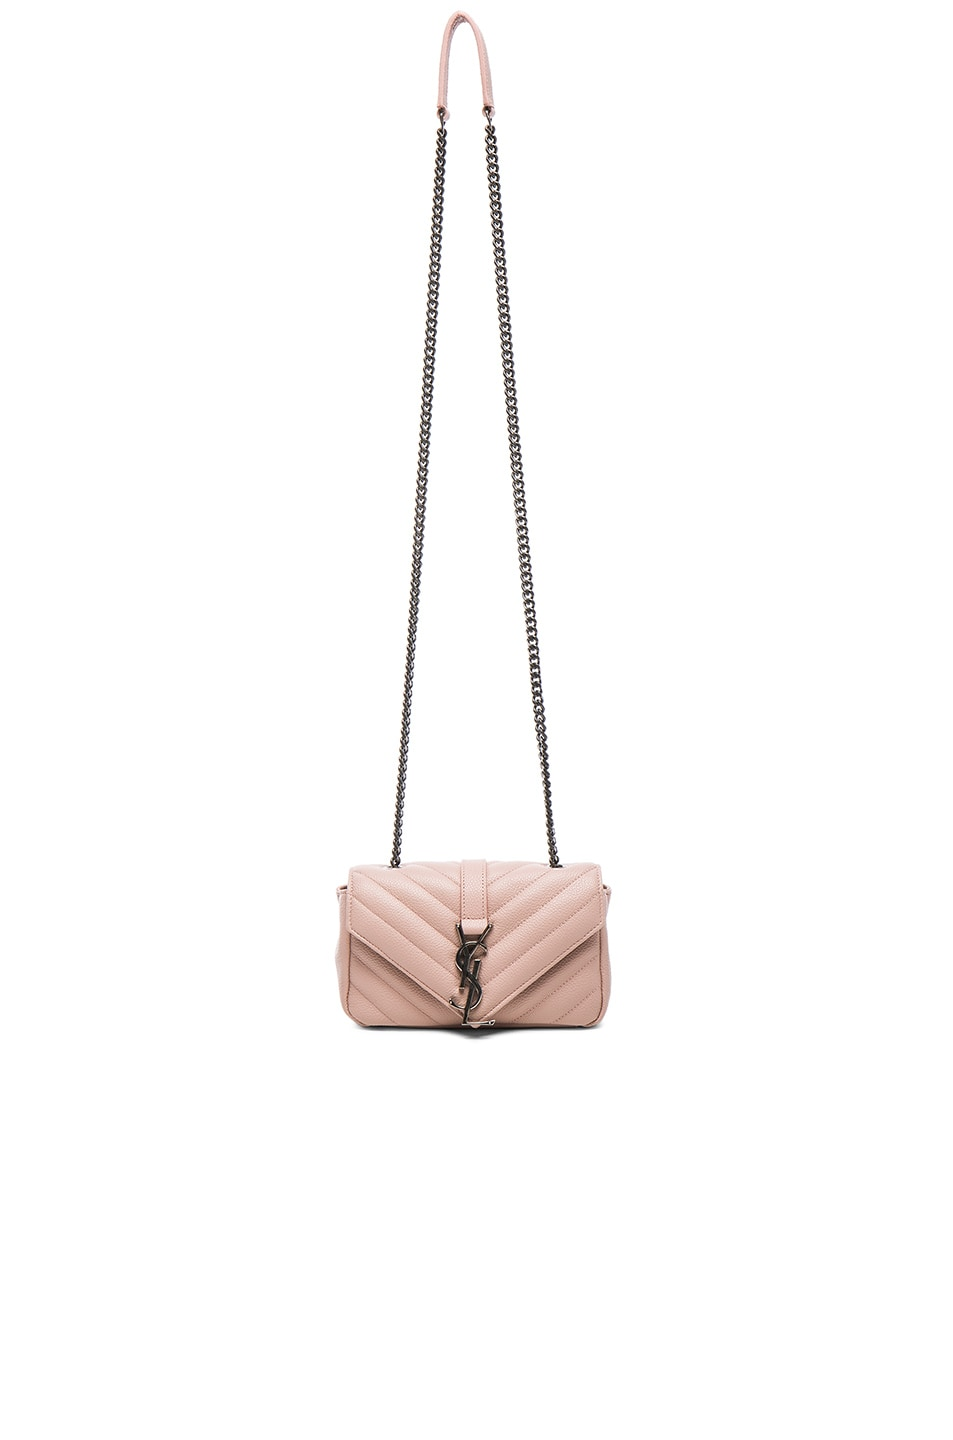 63af70f9e05 Image 1 of Saint Laurent Baby Monogramme Quilted Chain Bag in Pale Blush